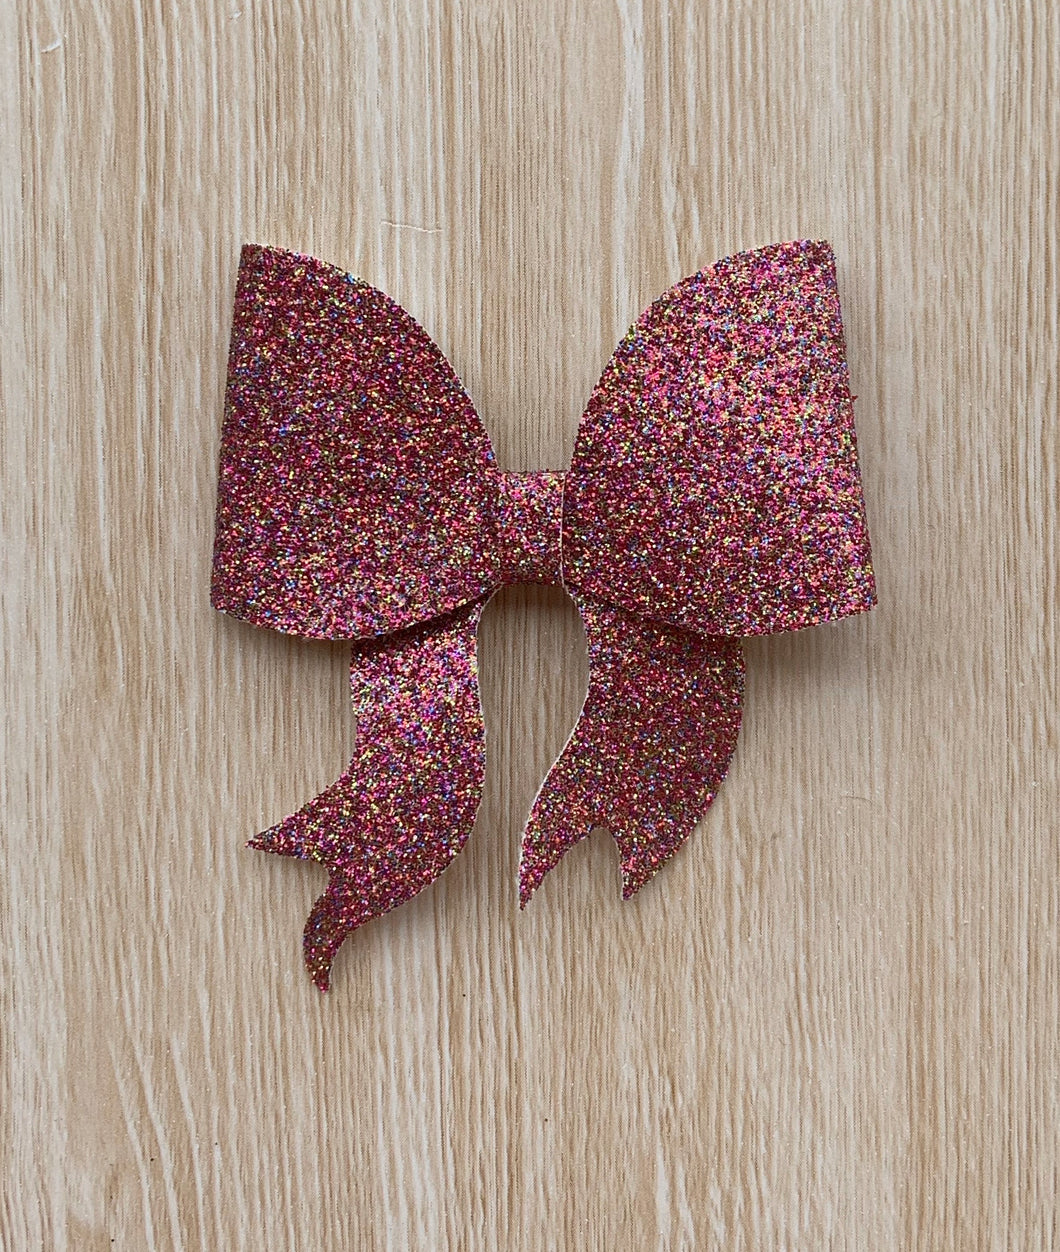 Bow32 glitter bow, leatherette bow, fringe clip, butterfly bow, personalised bow, rainbow bow, dolly hair bow, floral bow, shimmer bow, pretty bow , Bow Handmade Hairbow, handmade hair accessories, Sweet Adalyn Sweet Adalyn